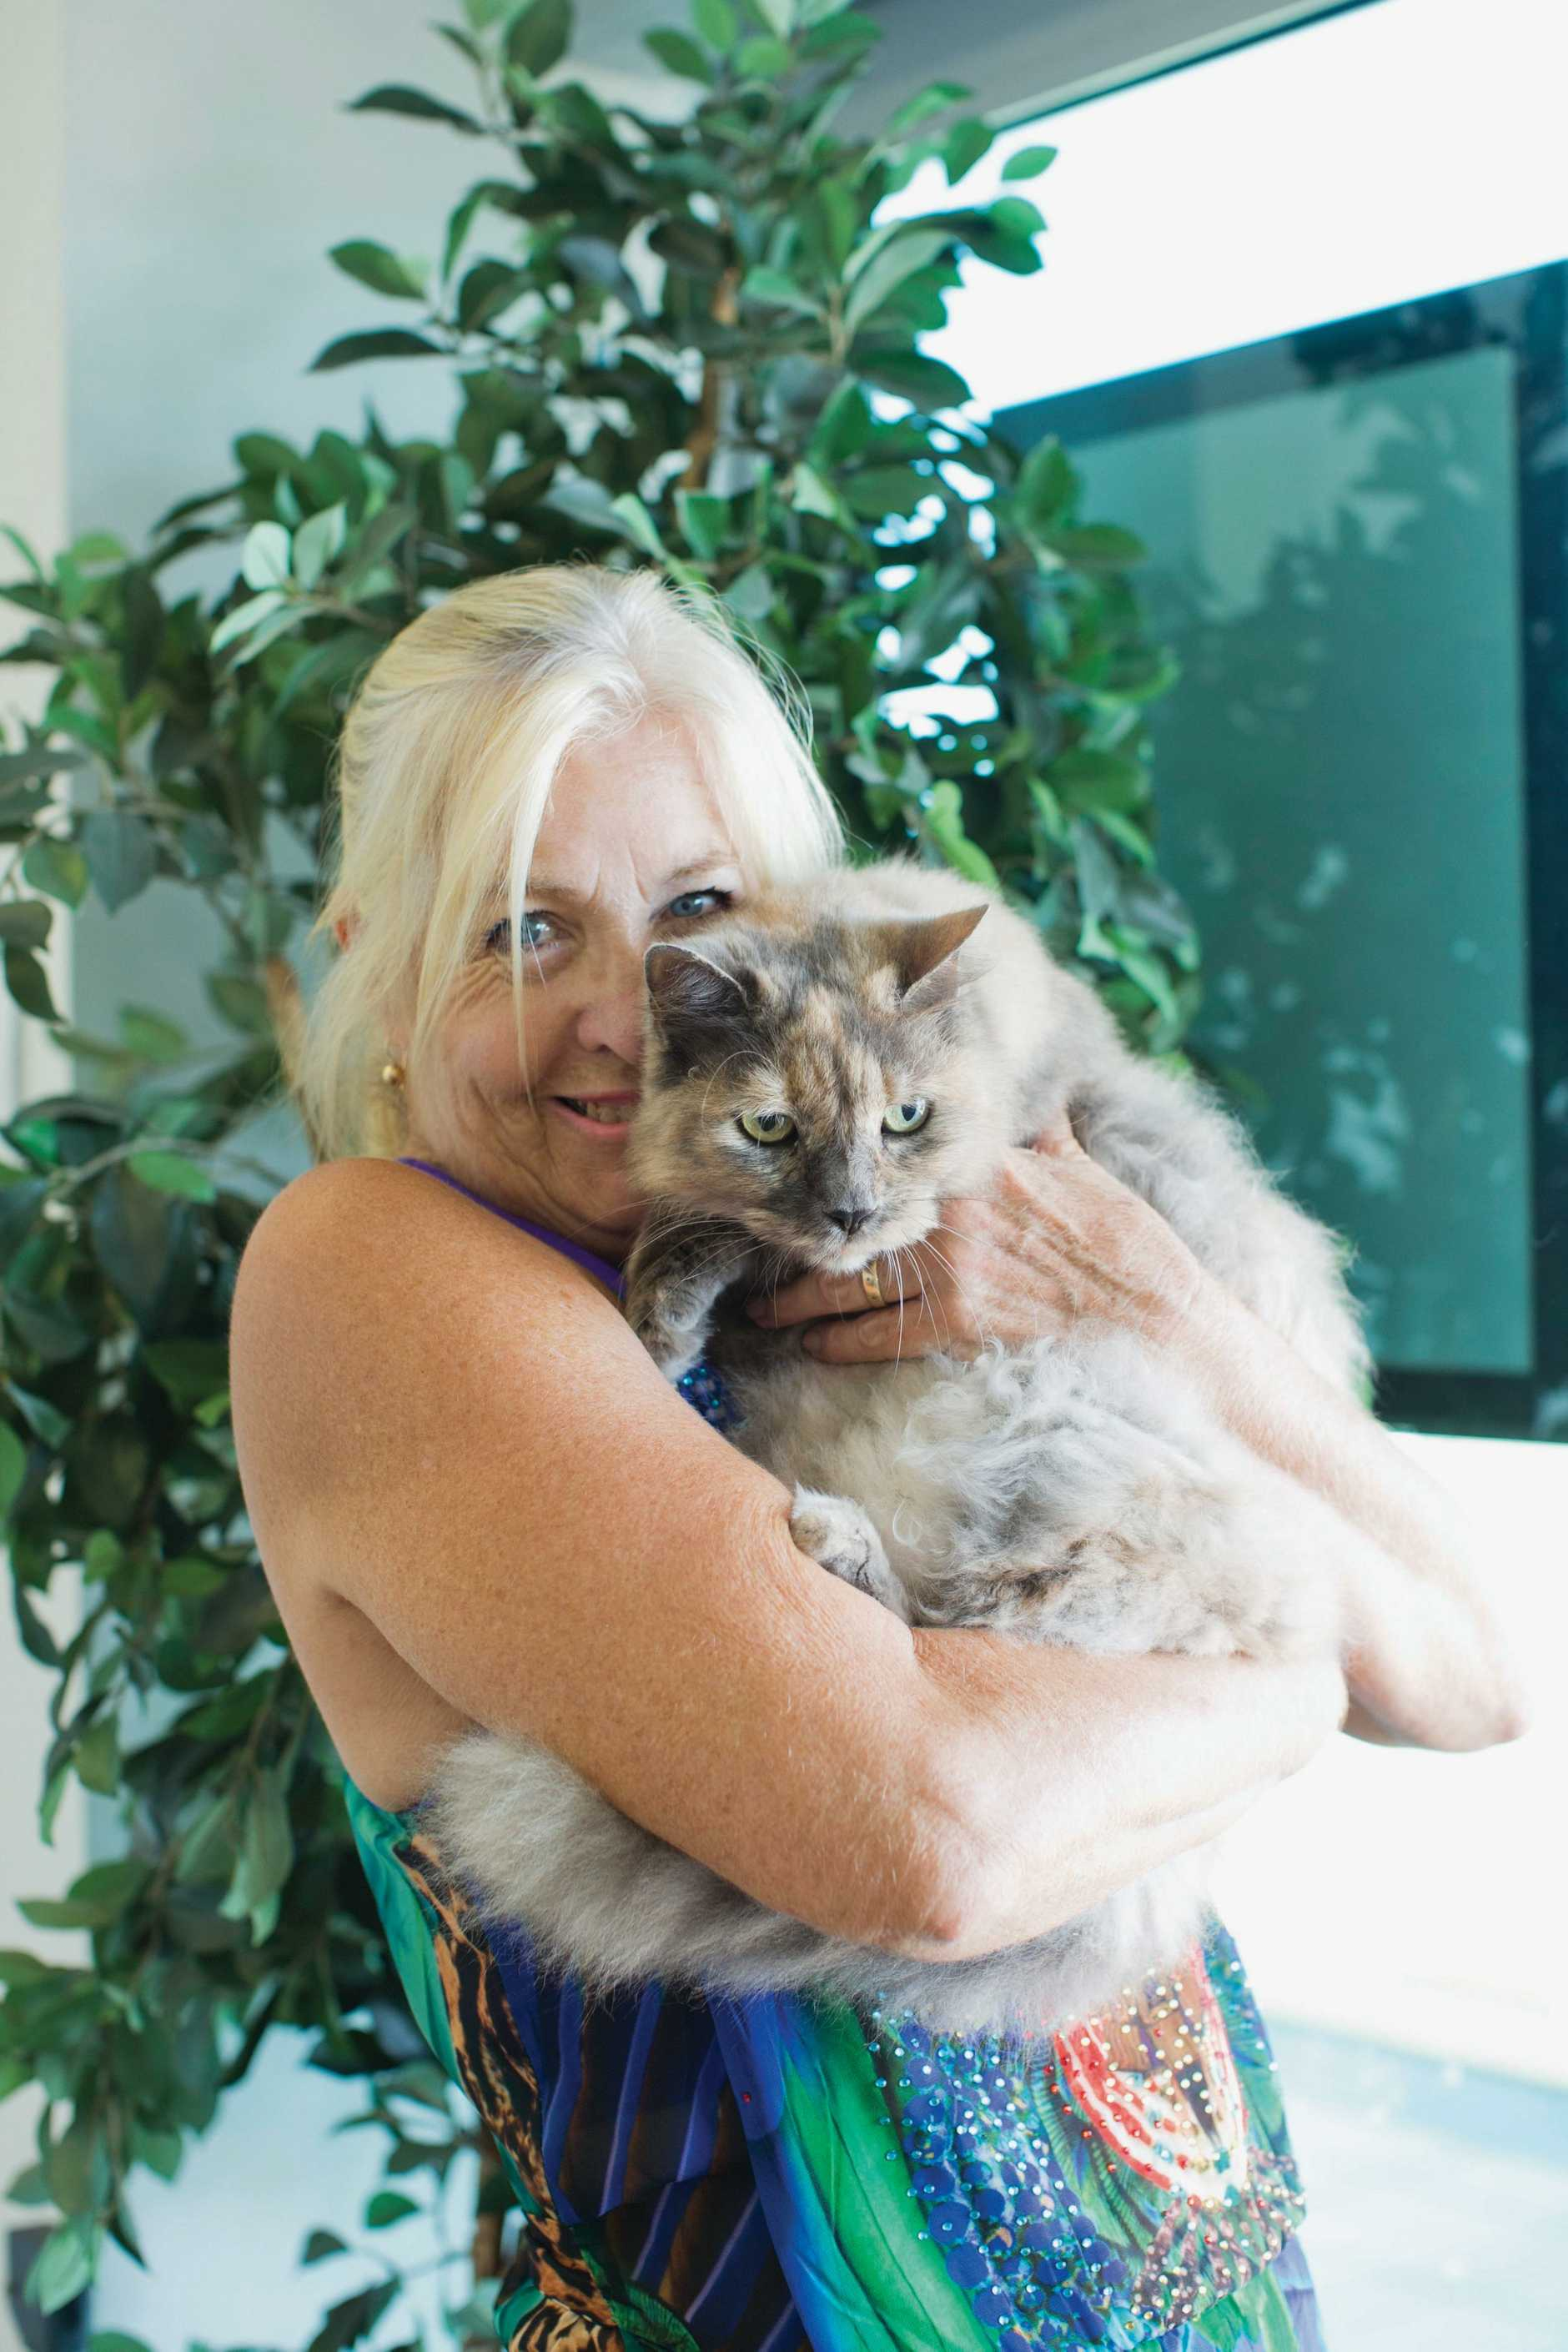 Pam Price and her cat Misty